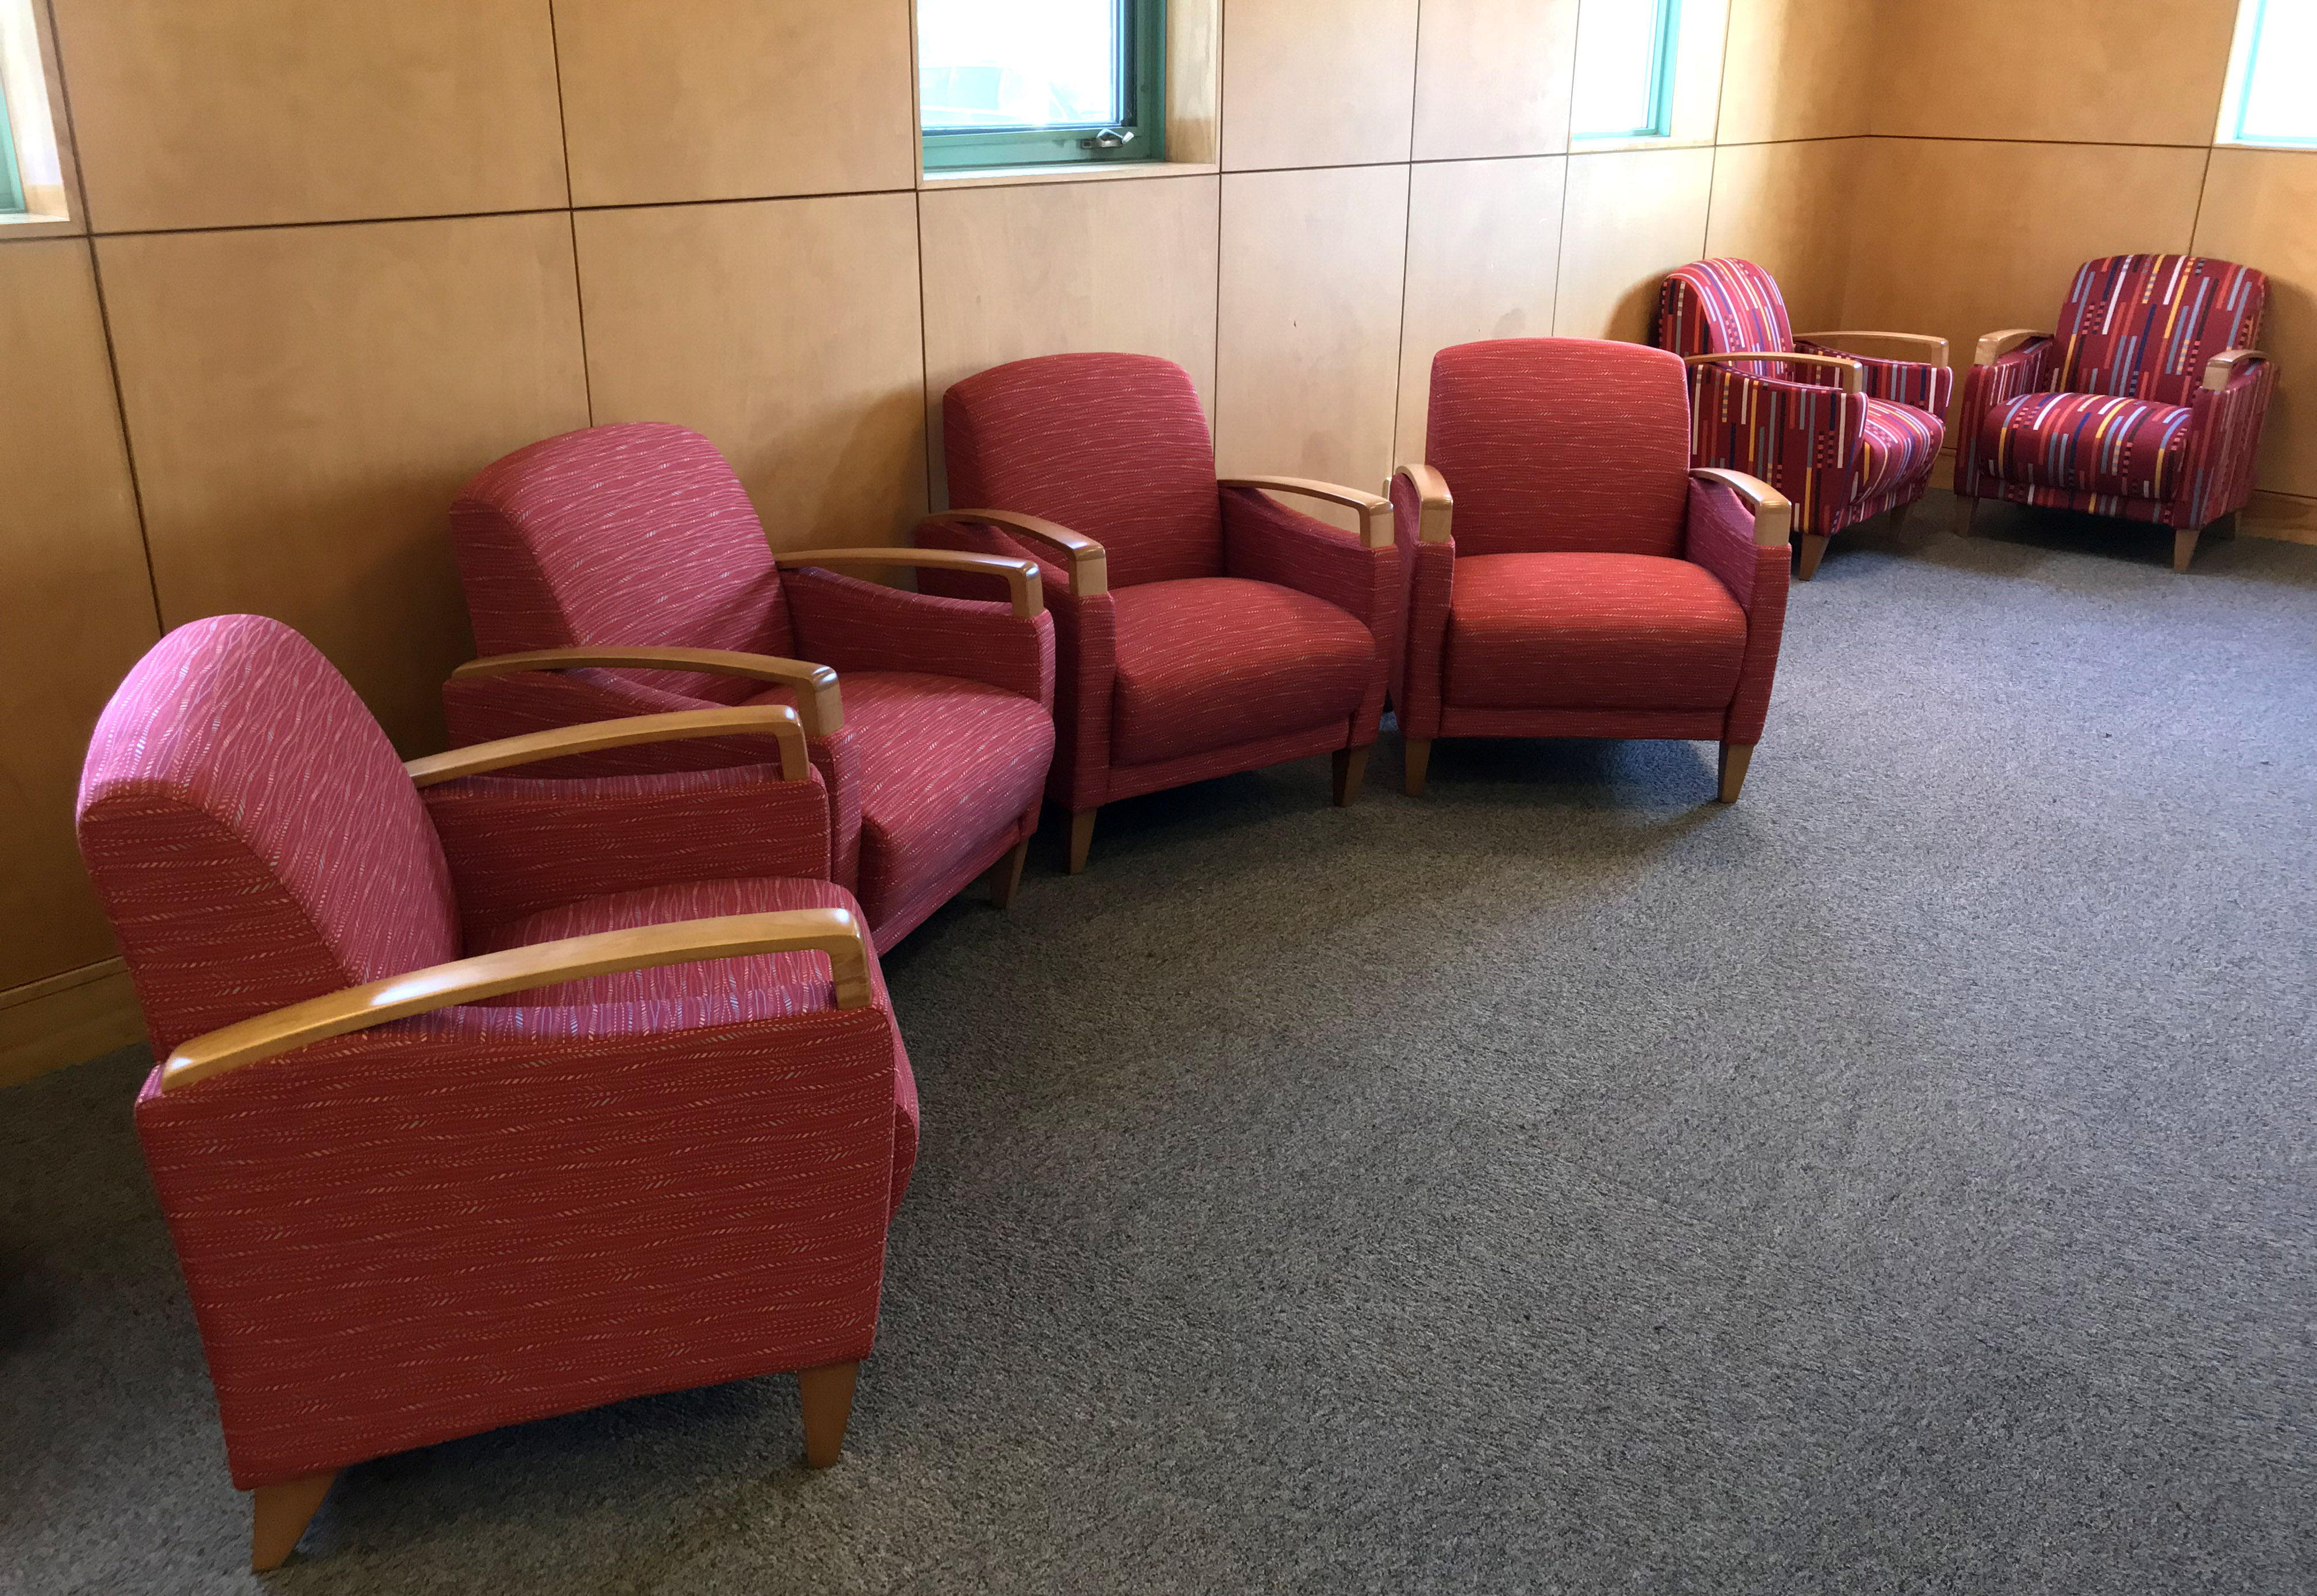 New seating at Ansley Grove Library